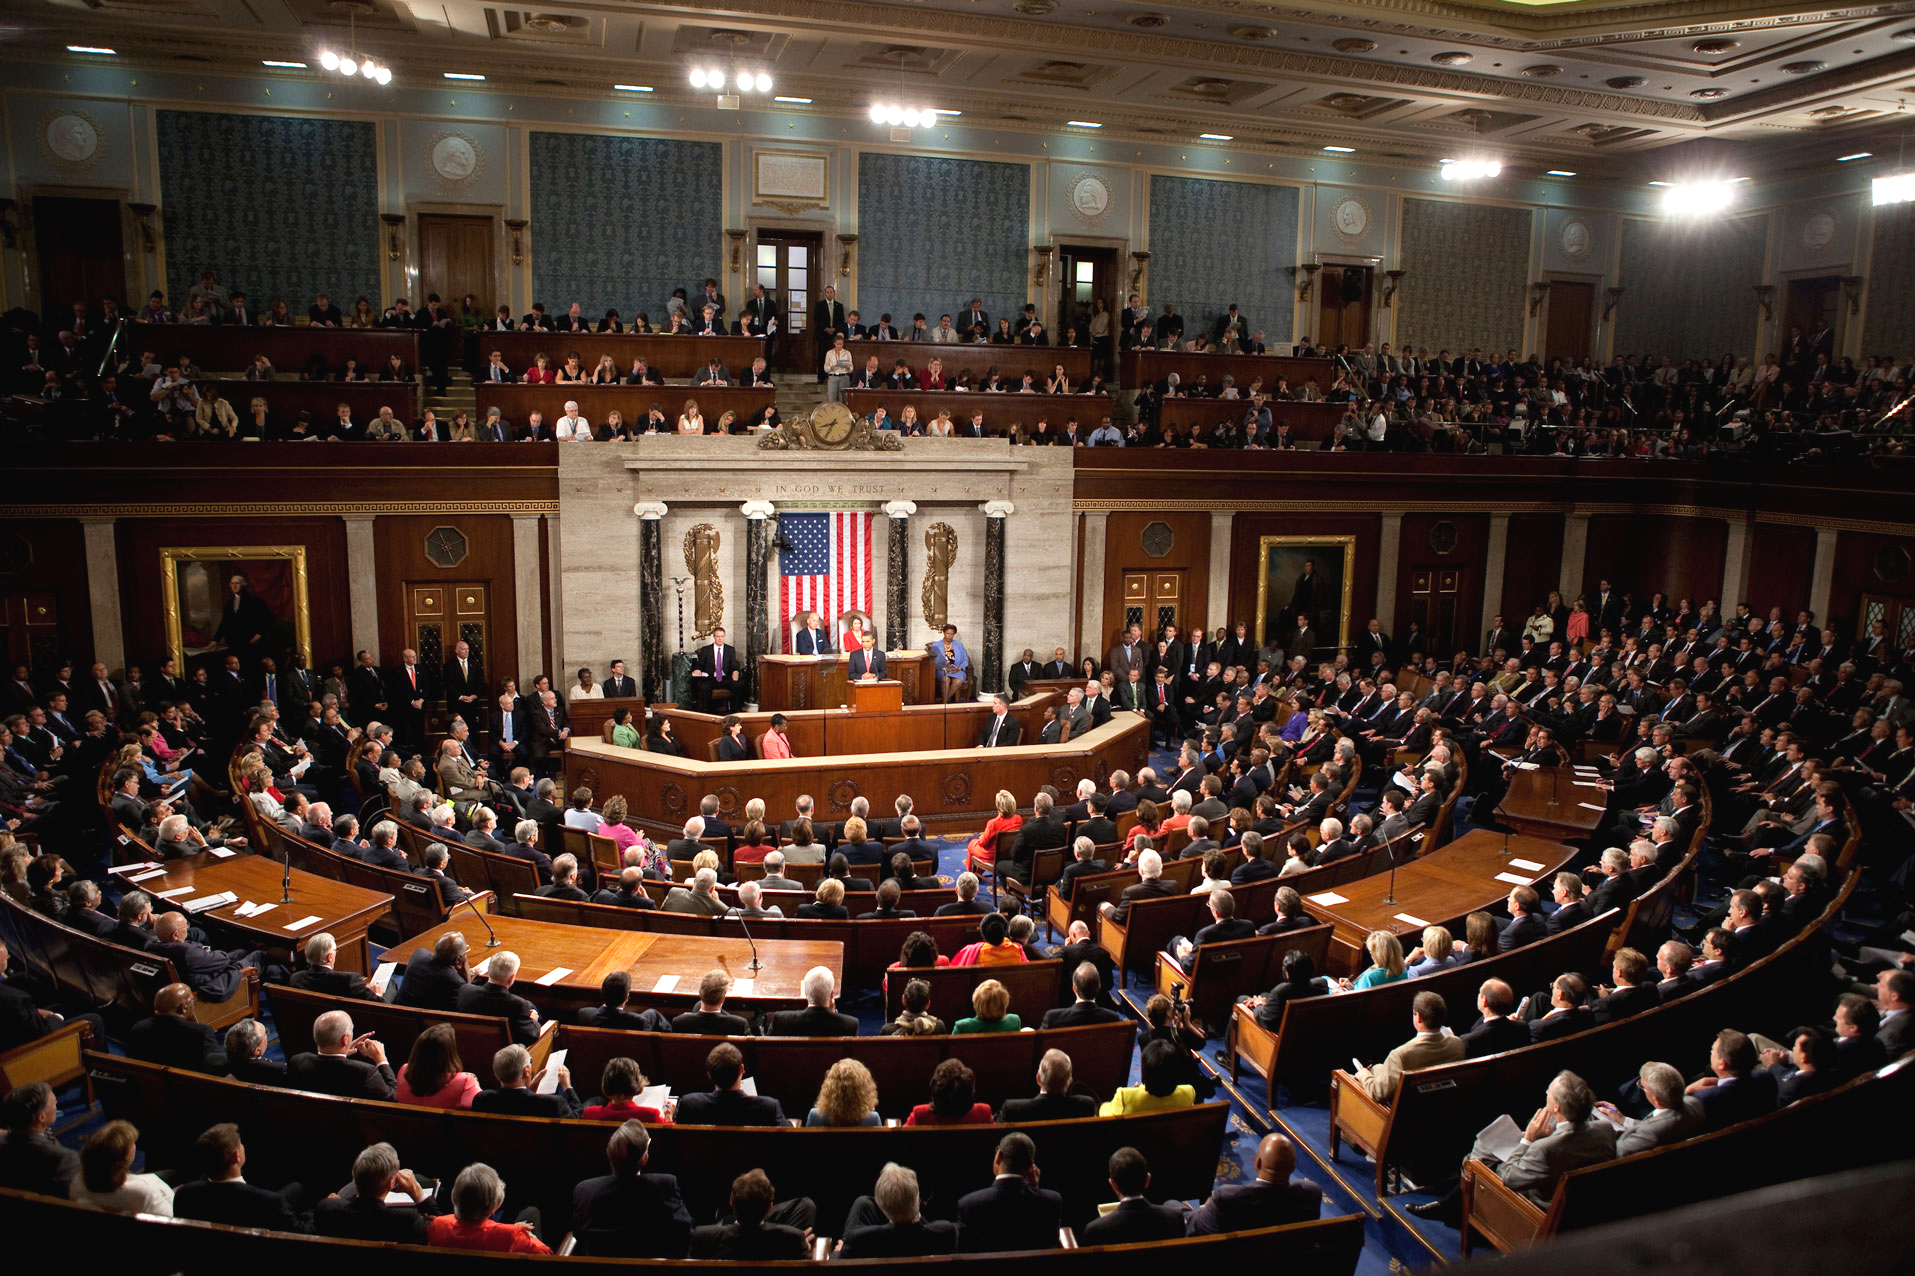 Obama_Health_Care_Speech_to_Joint_Session_of_Congress-1.jpg